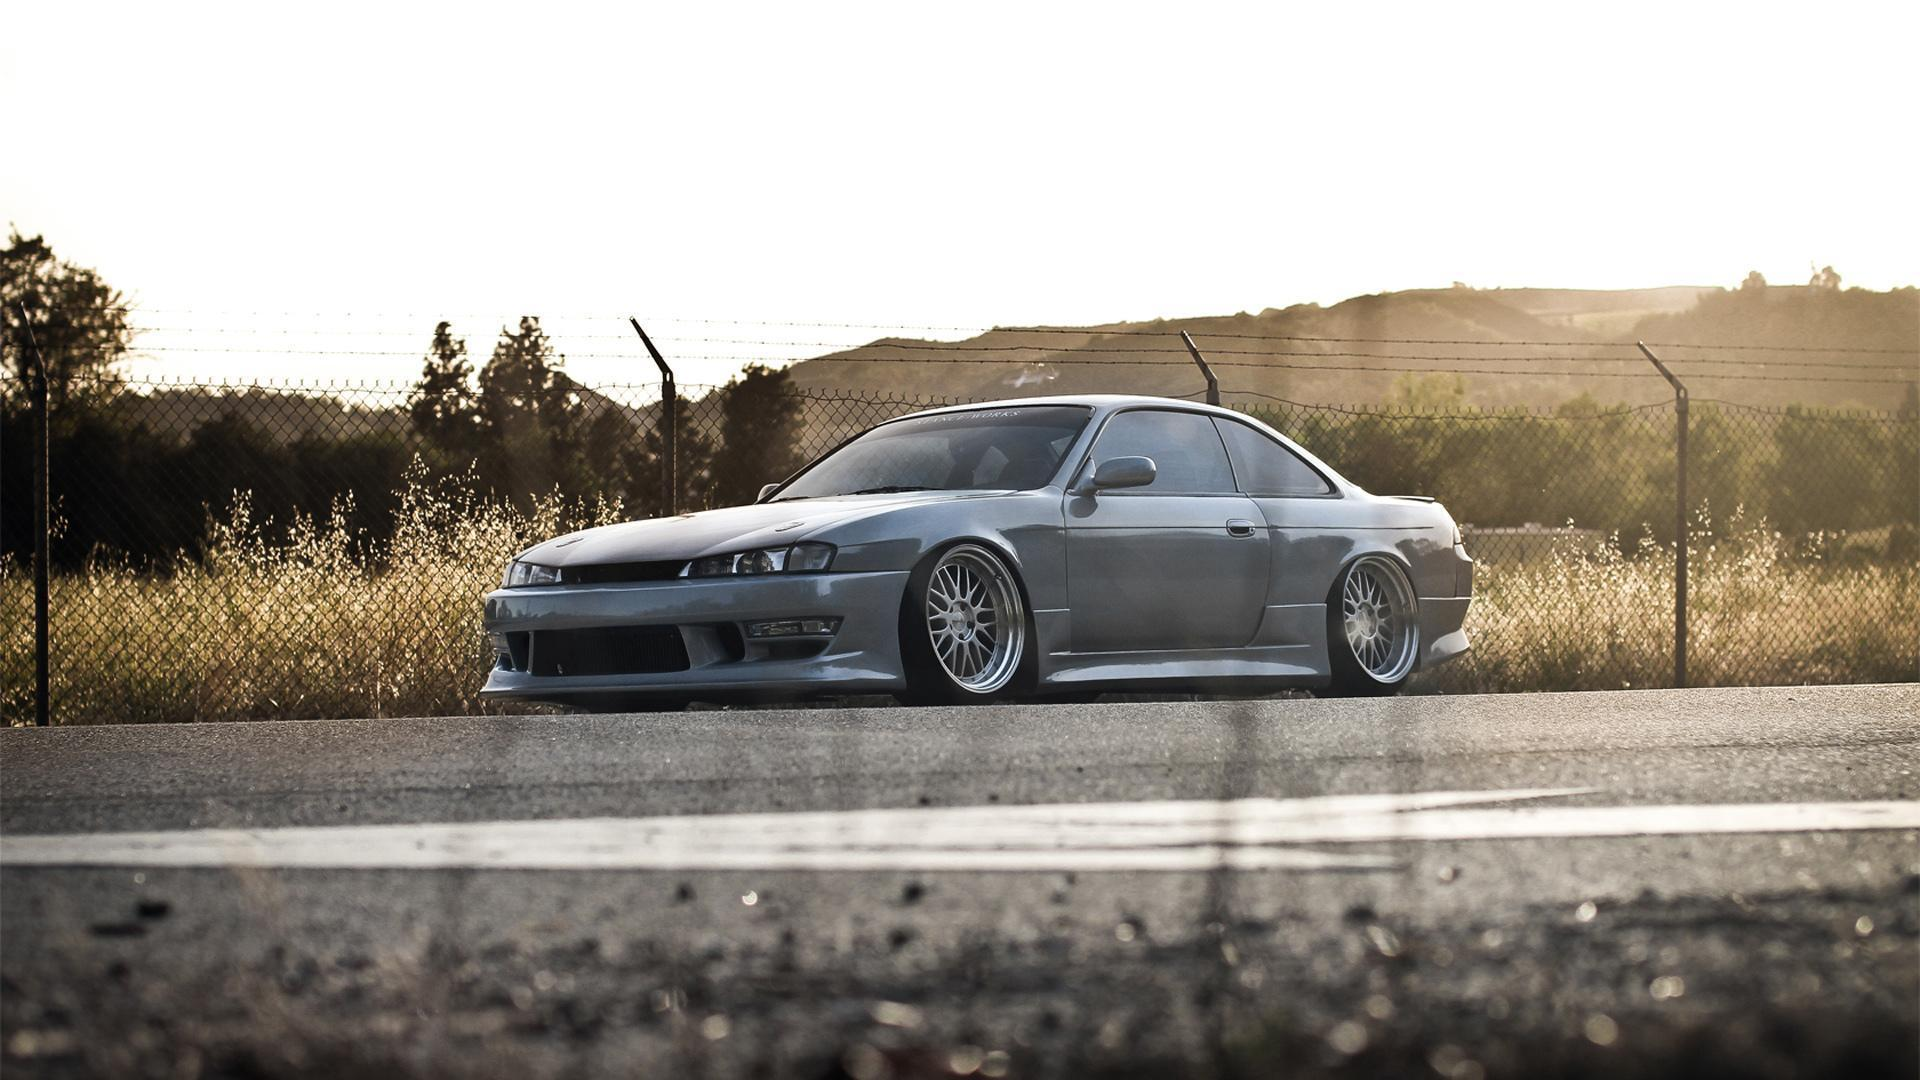 Nissan 240SX Wallpapers - Wallpaper Cave